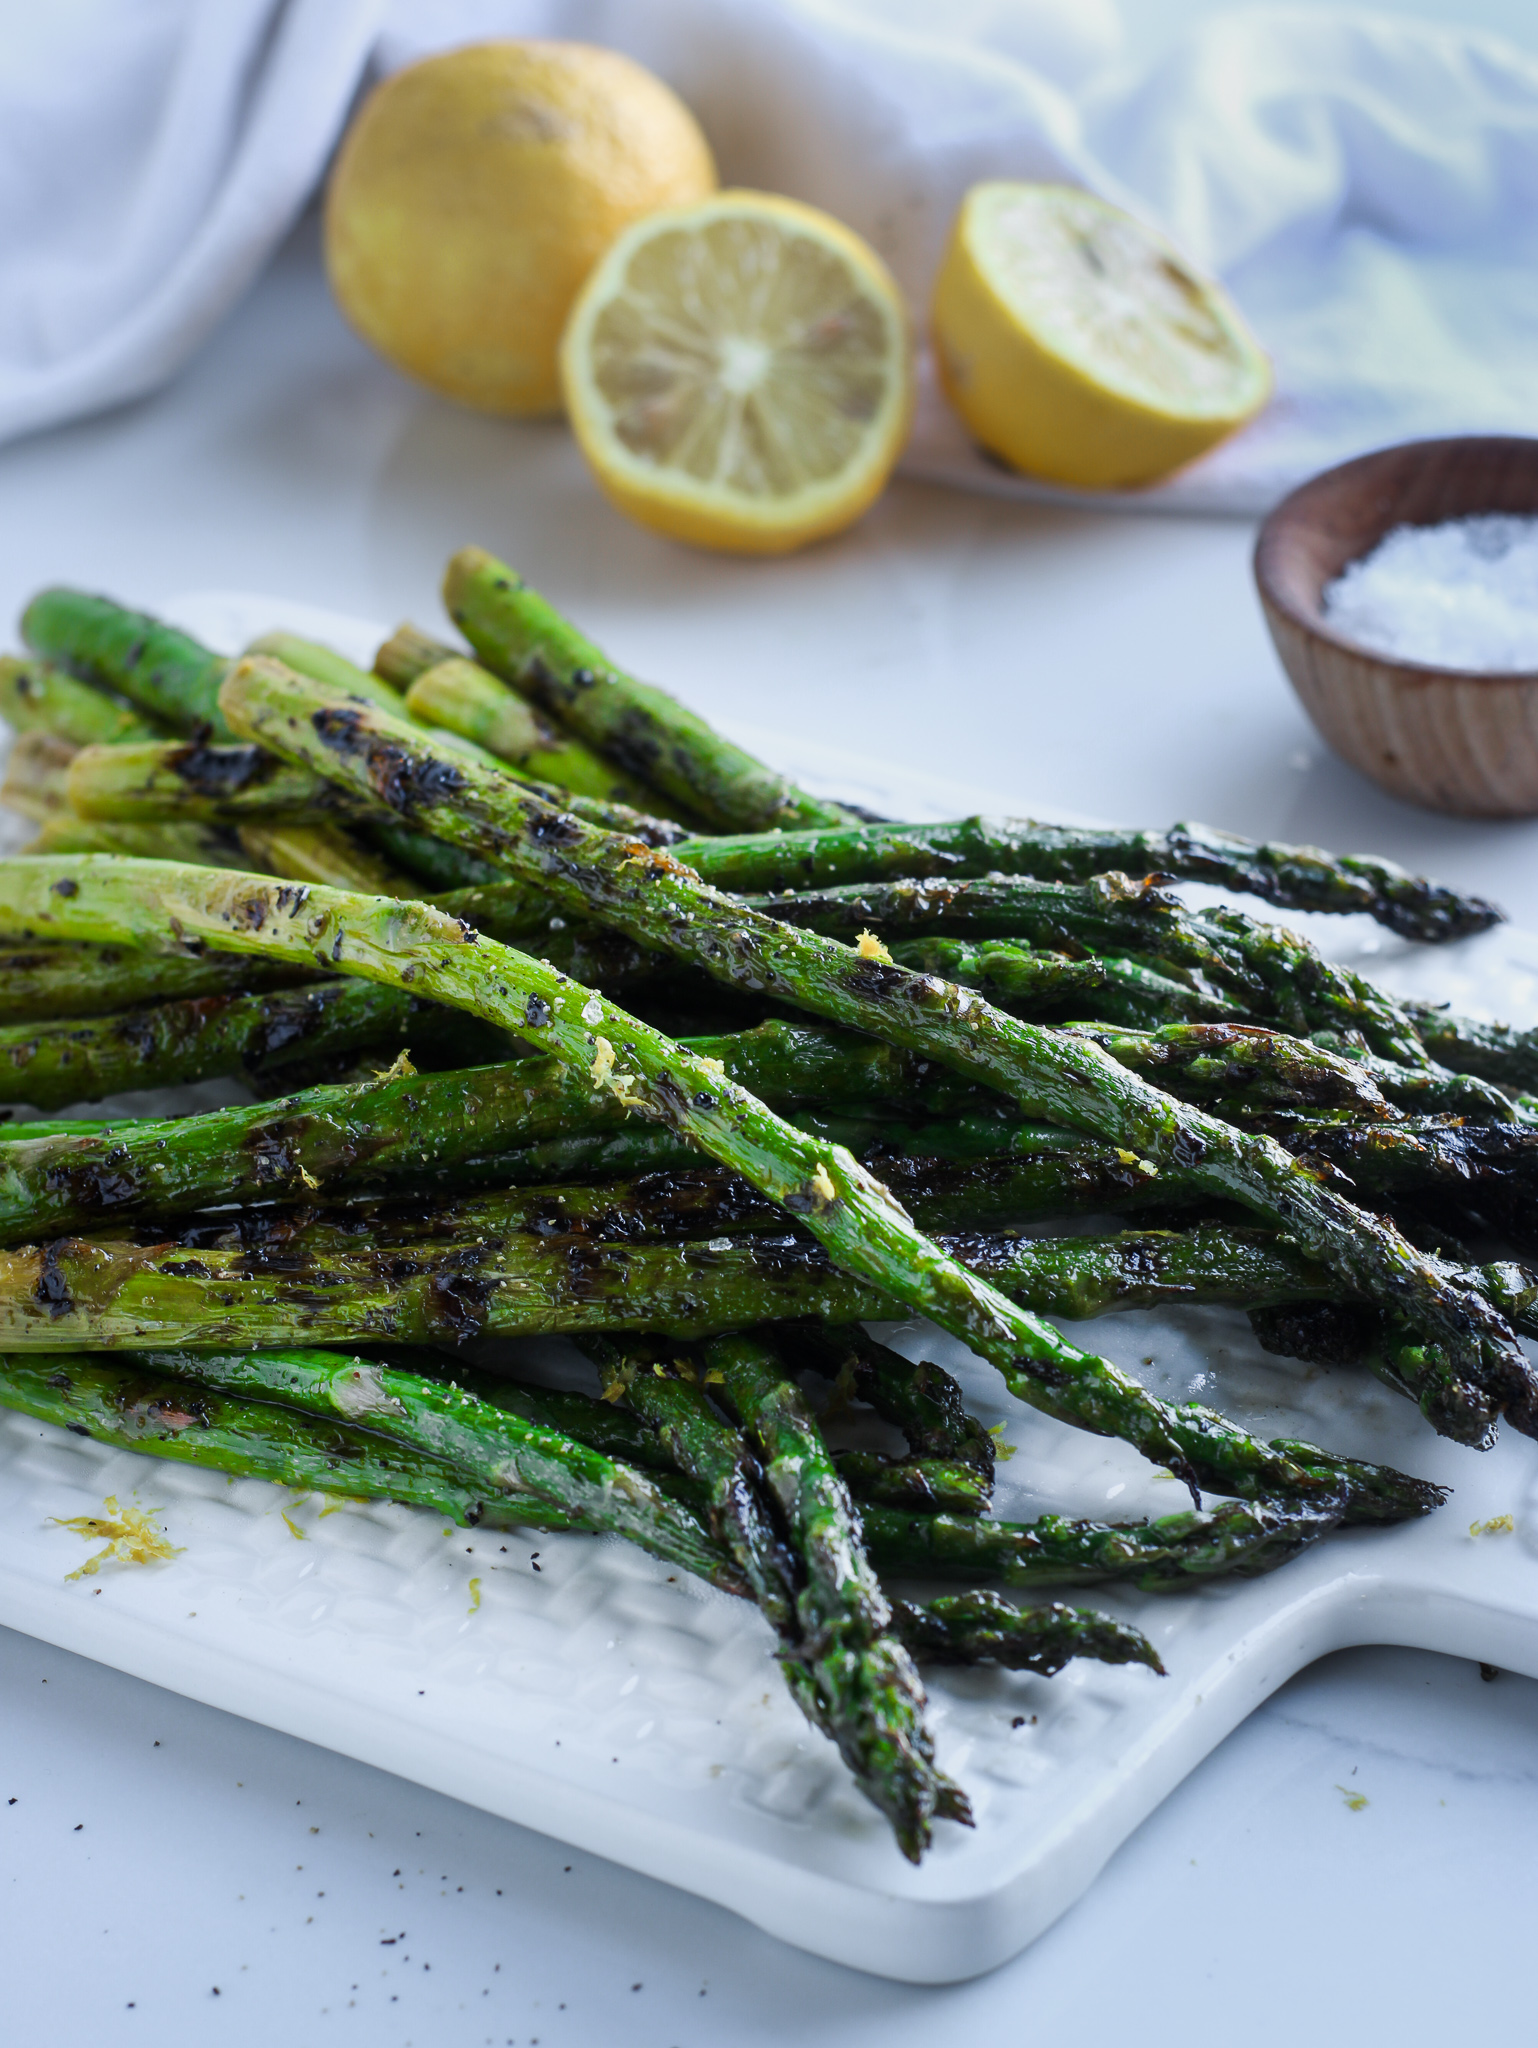 Grilled lemon and herb asparagus sitting on a white platter with sliced lemons and a small wooden bowl of salt in the background.